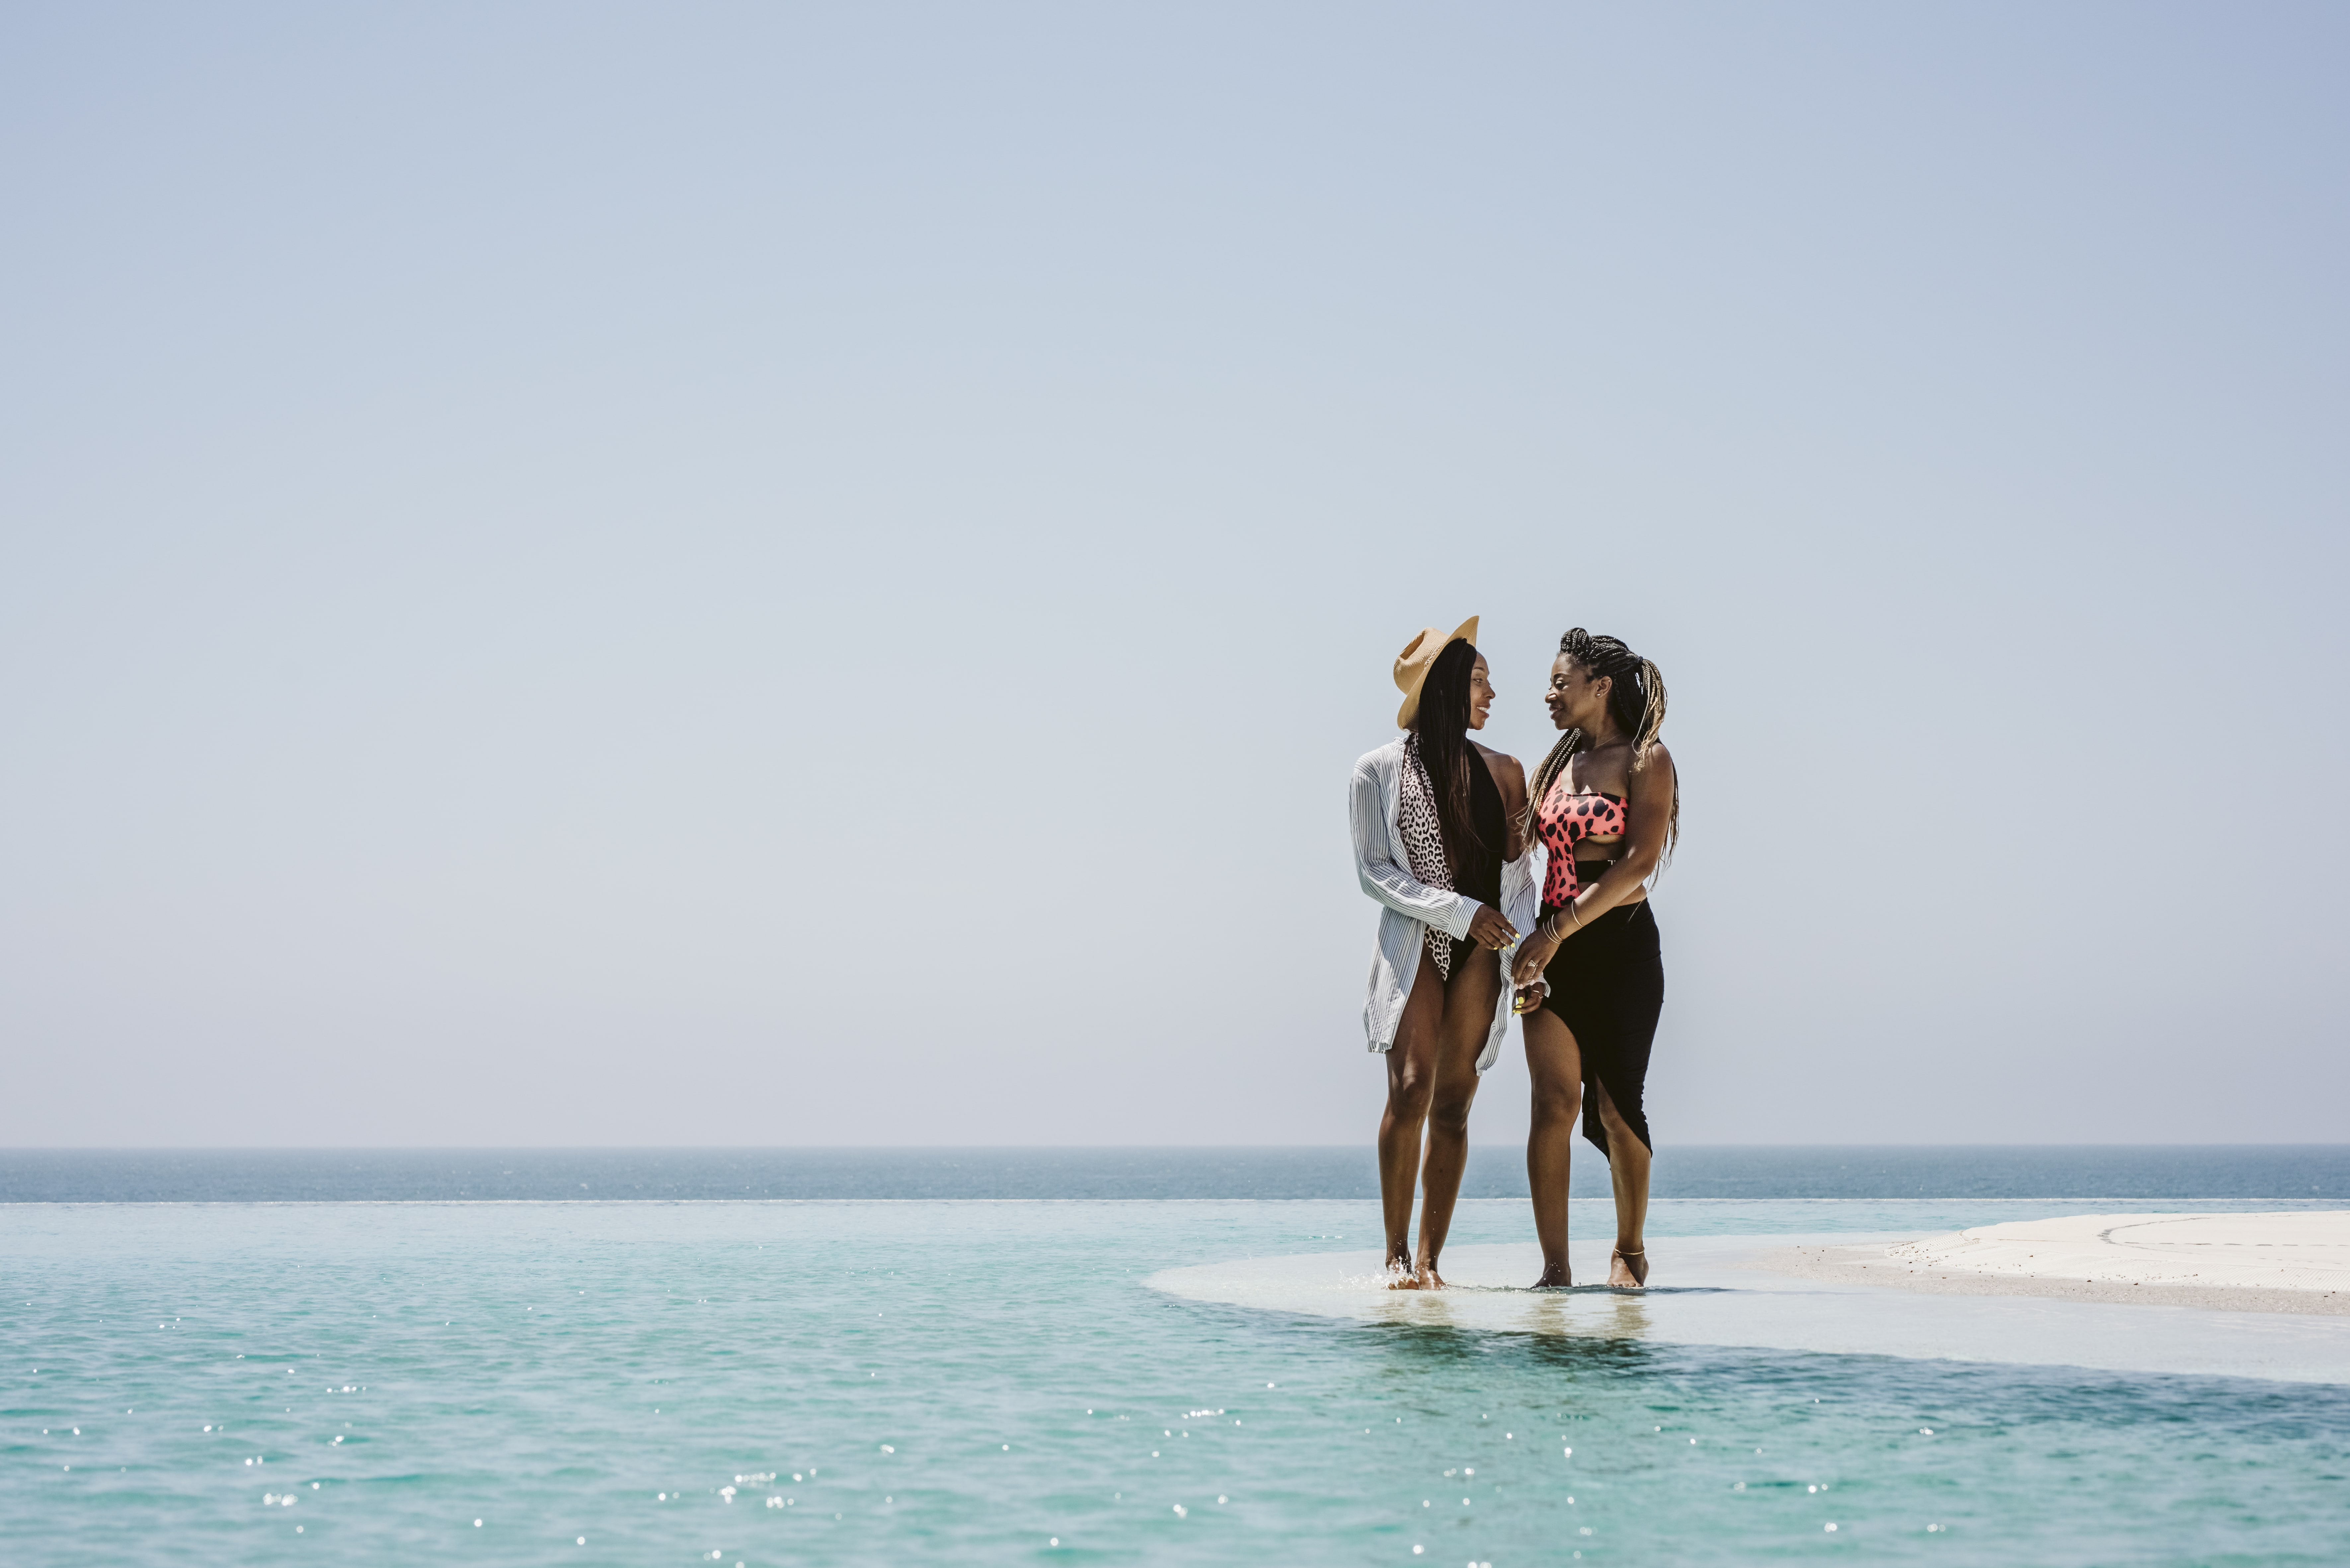 two woman stand with their feet in the ocean